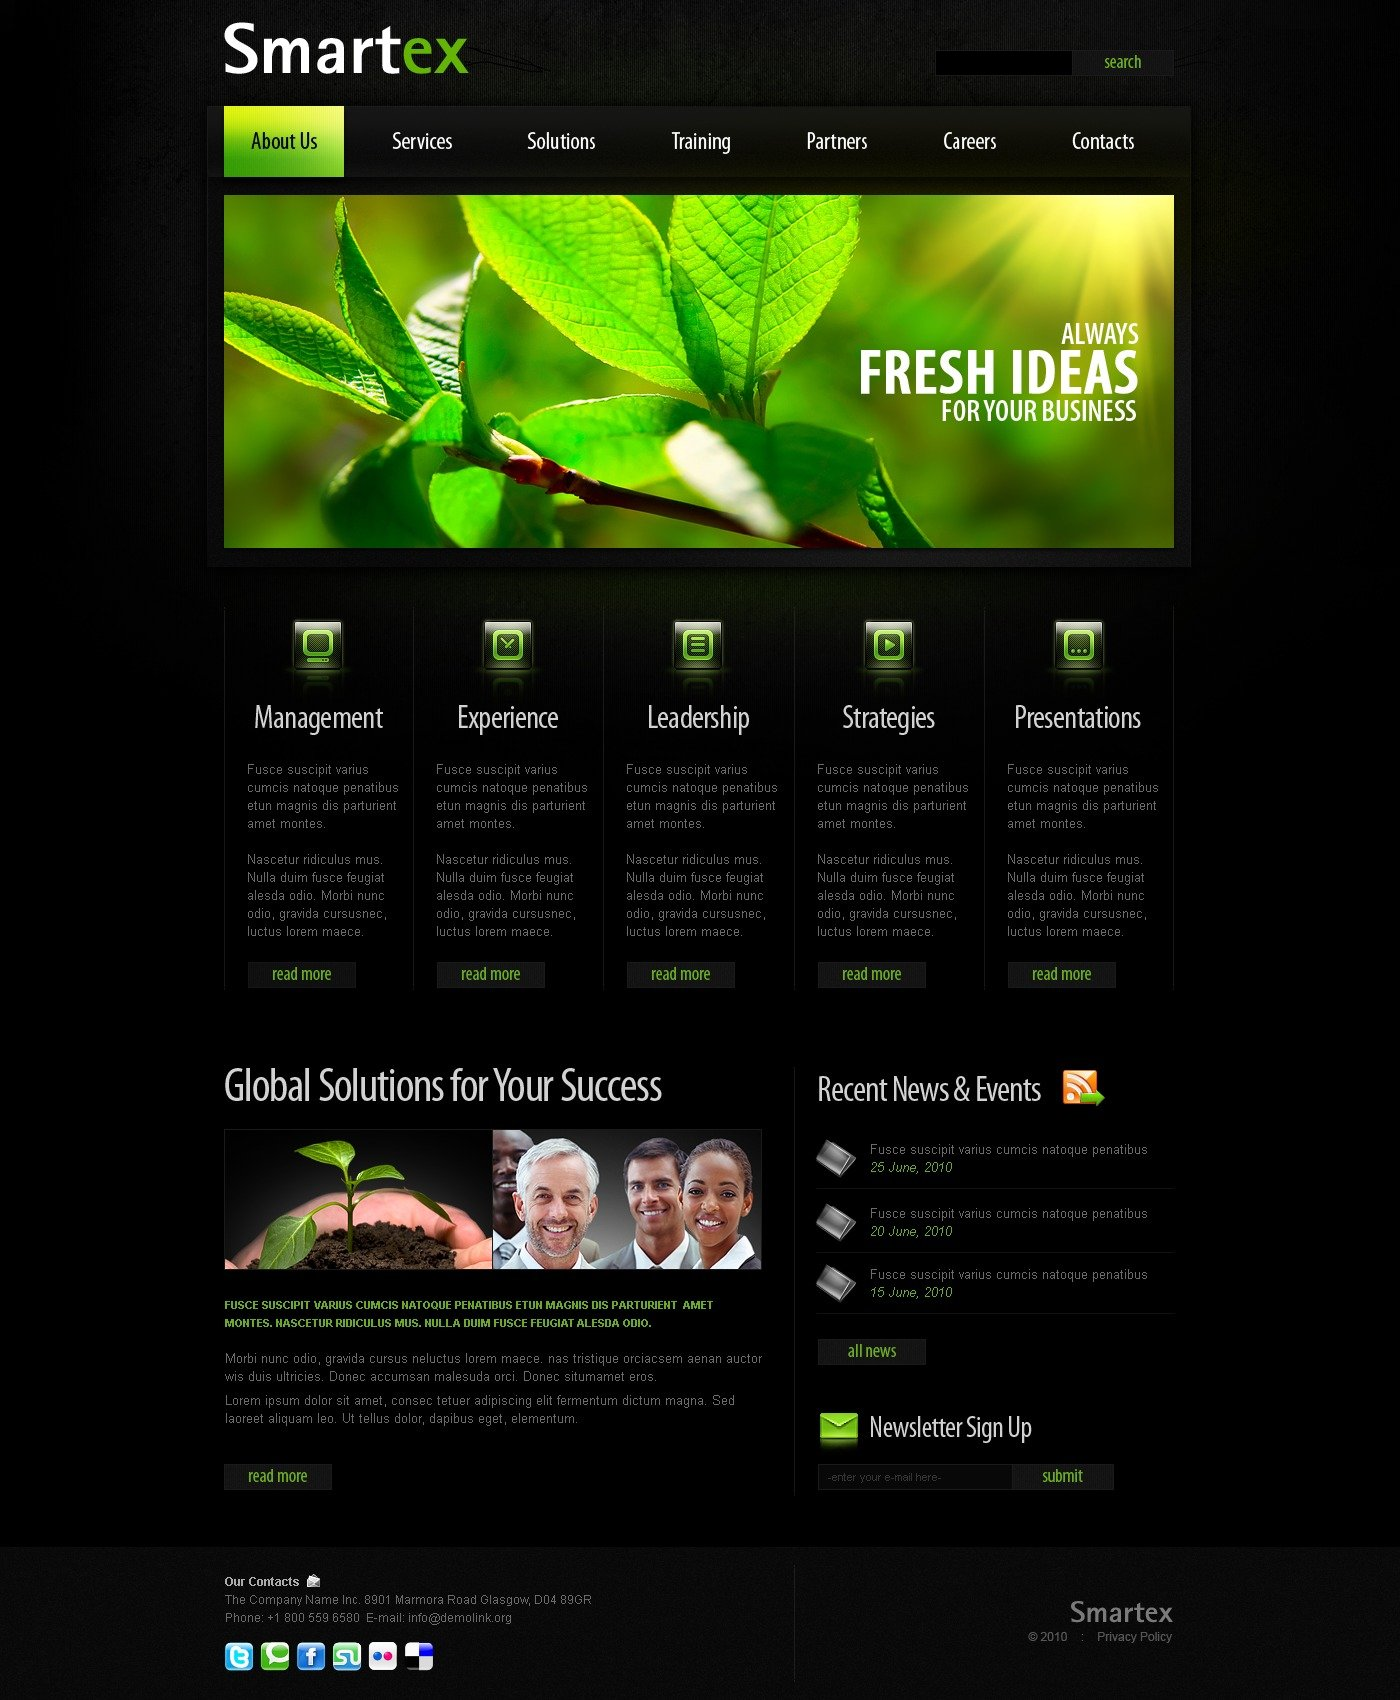 The Smartex Business Company PSD Design 54064, one of the best PSD templates of its kind (business, wide, black), also known as smartex business company PSD template, corporate solutions PSD template, innovations PSD template, contacts PSD template, service PSD template, support PSD template, information dealer PSD template, stocks PSD template, team PSD template, success PSD template, money PSD template, marketing PSD template, director PSD template, manager PSD template, analytics PSD template, planning PSD template, limited PSD template, office PSD template, sales and related with smartex business company, corporate solutions, innovations, contacts, service, support, information dealer, stocks, team, success, money, marketing, director, manager, analytics, planning, limited, office, sales, etc.